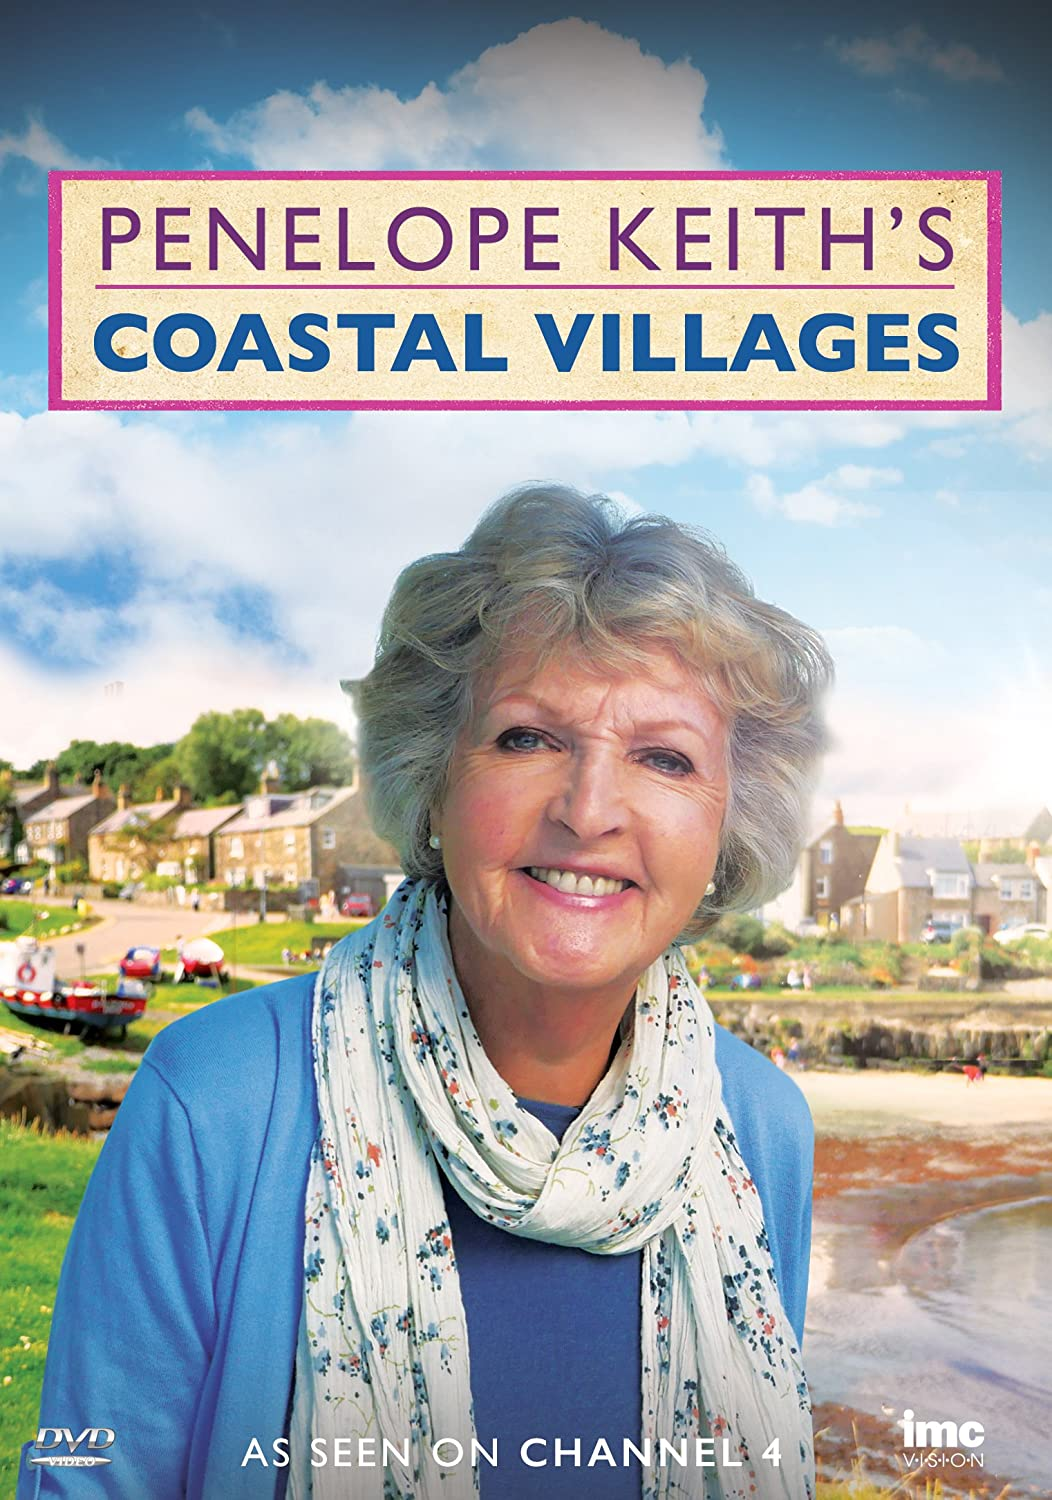 Penelope Keith's Coastal Villages